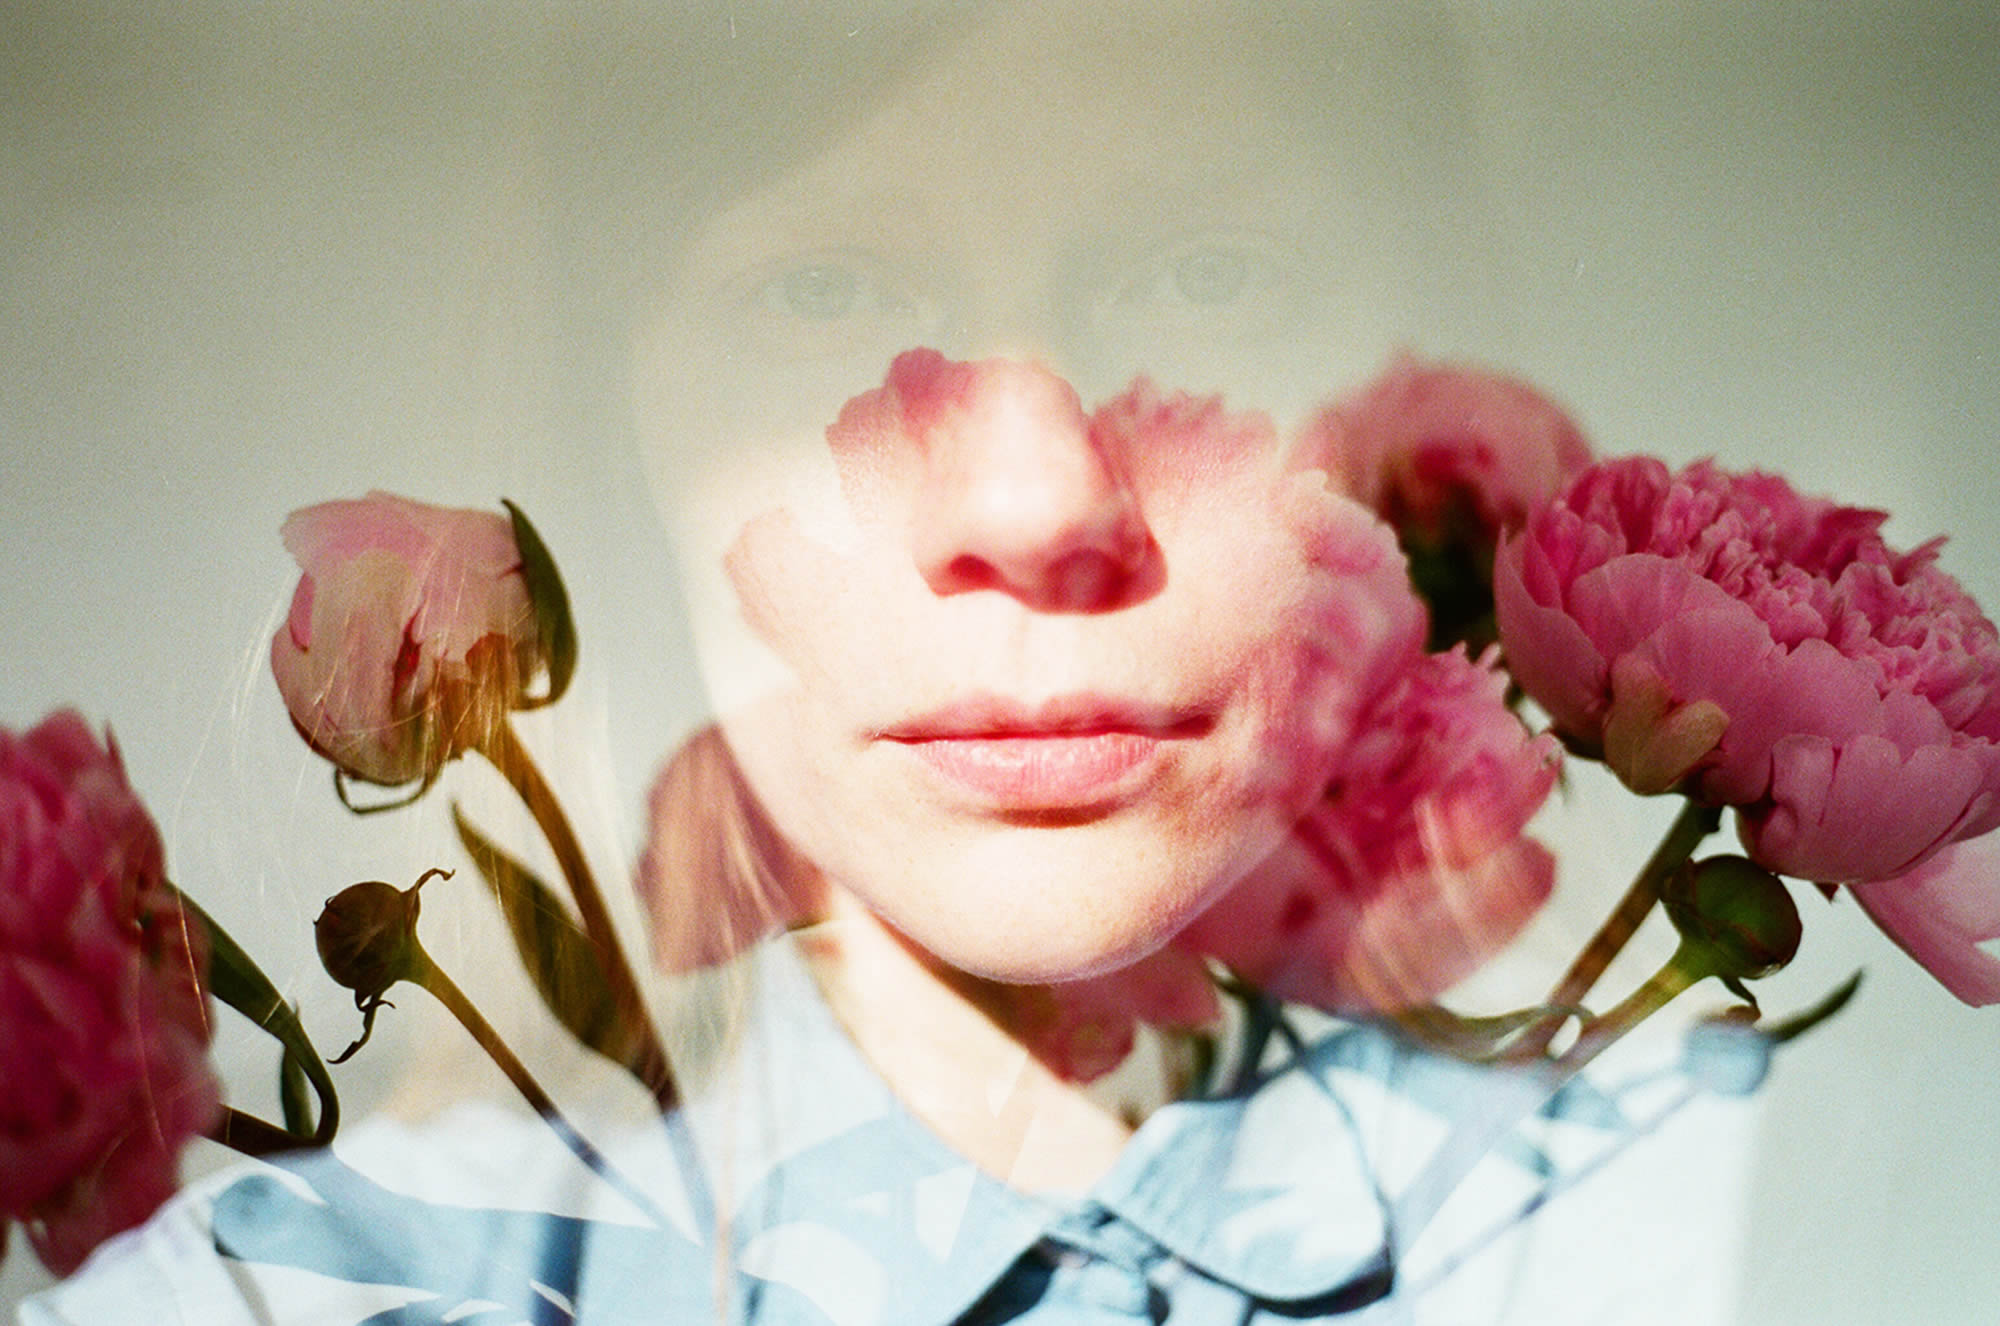 Self-Portraits and Friends: The Photography of Lina Scheynius